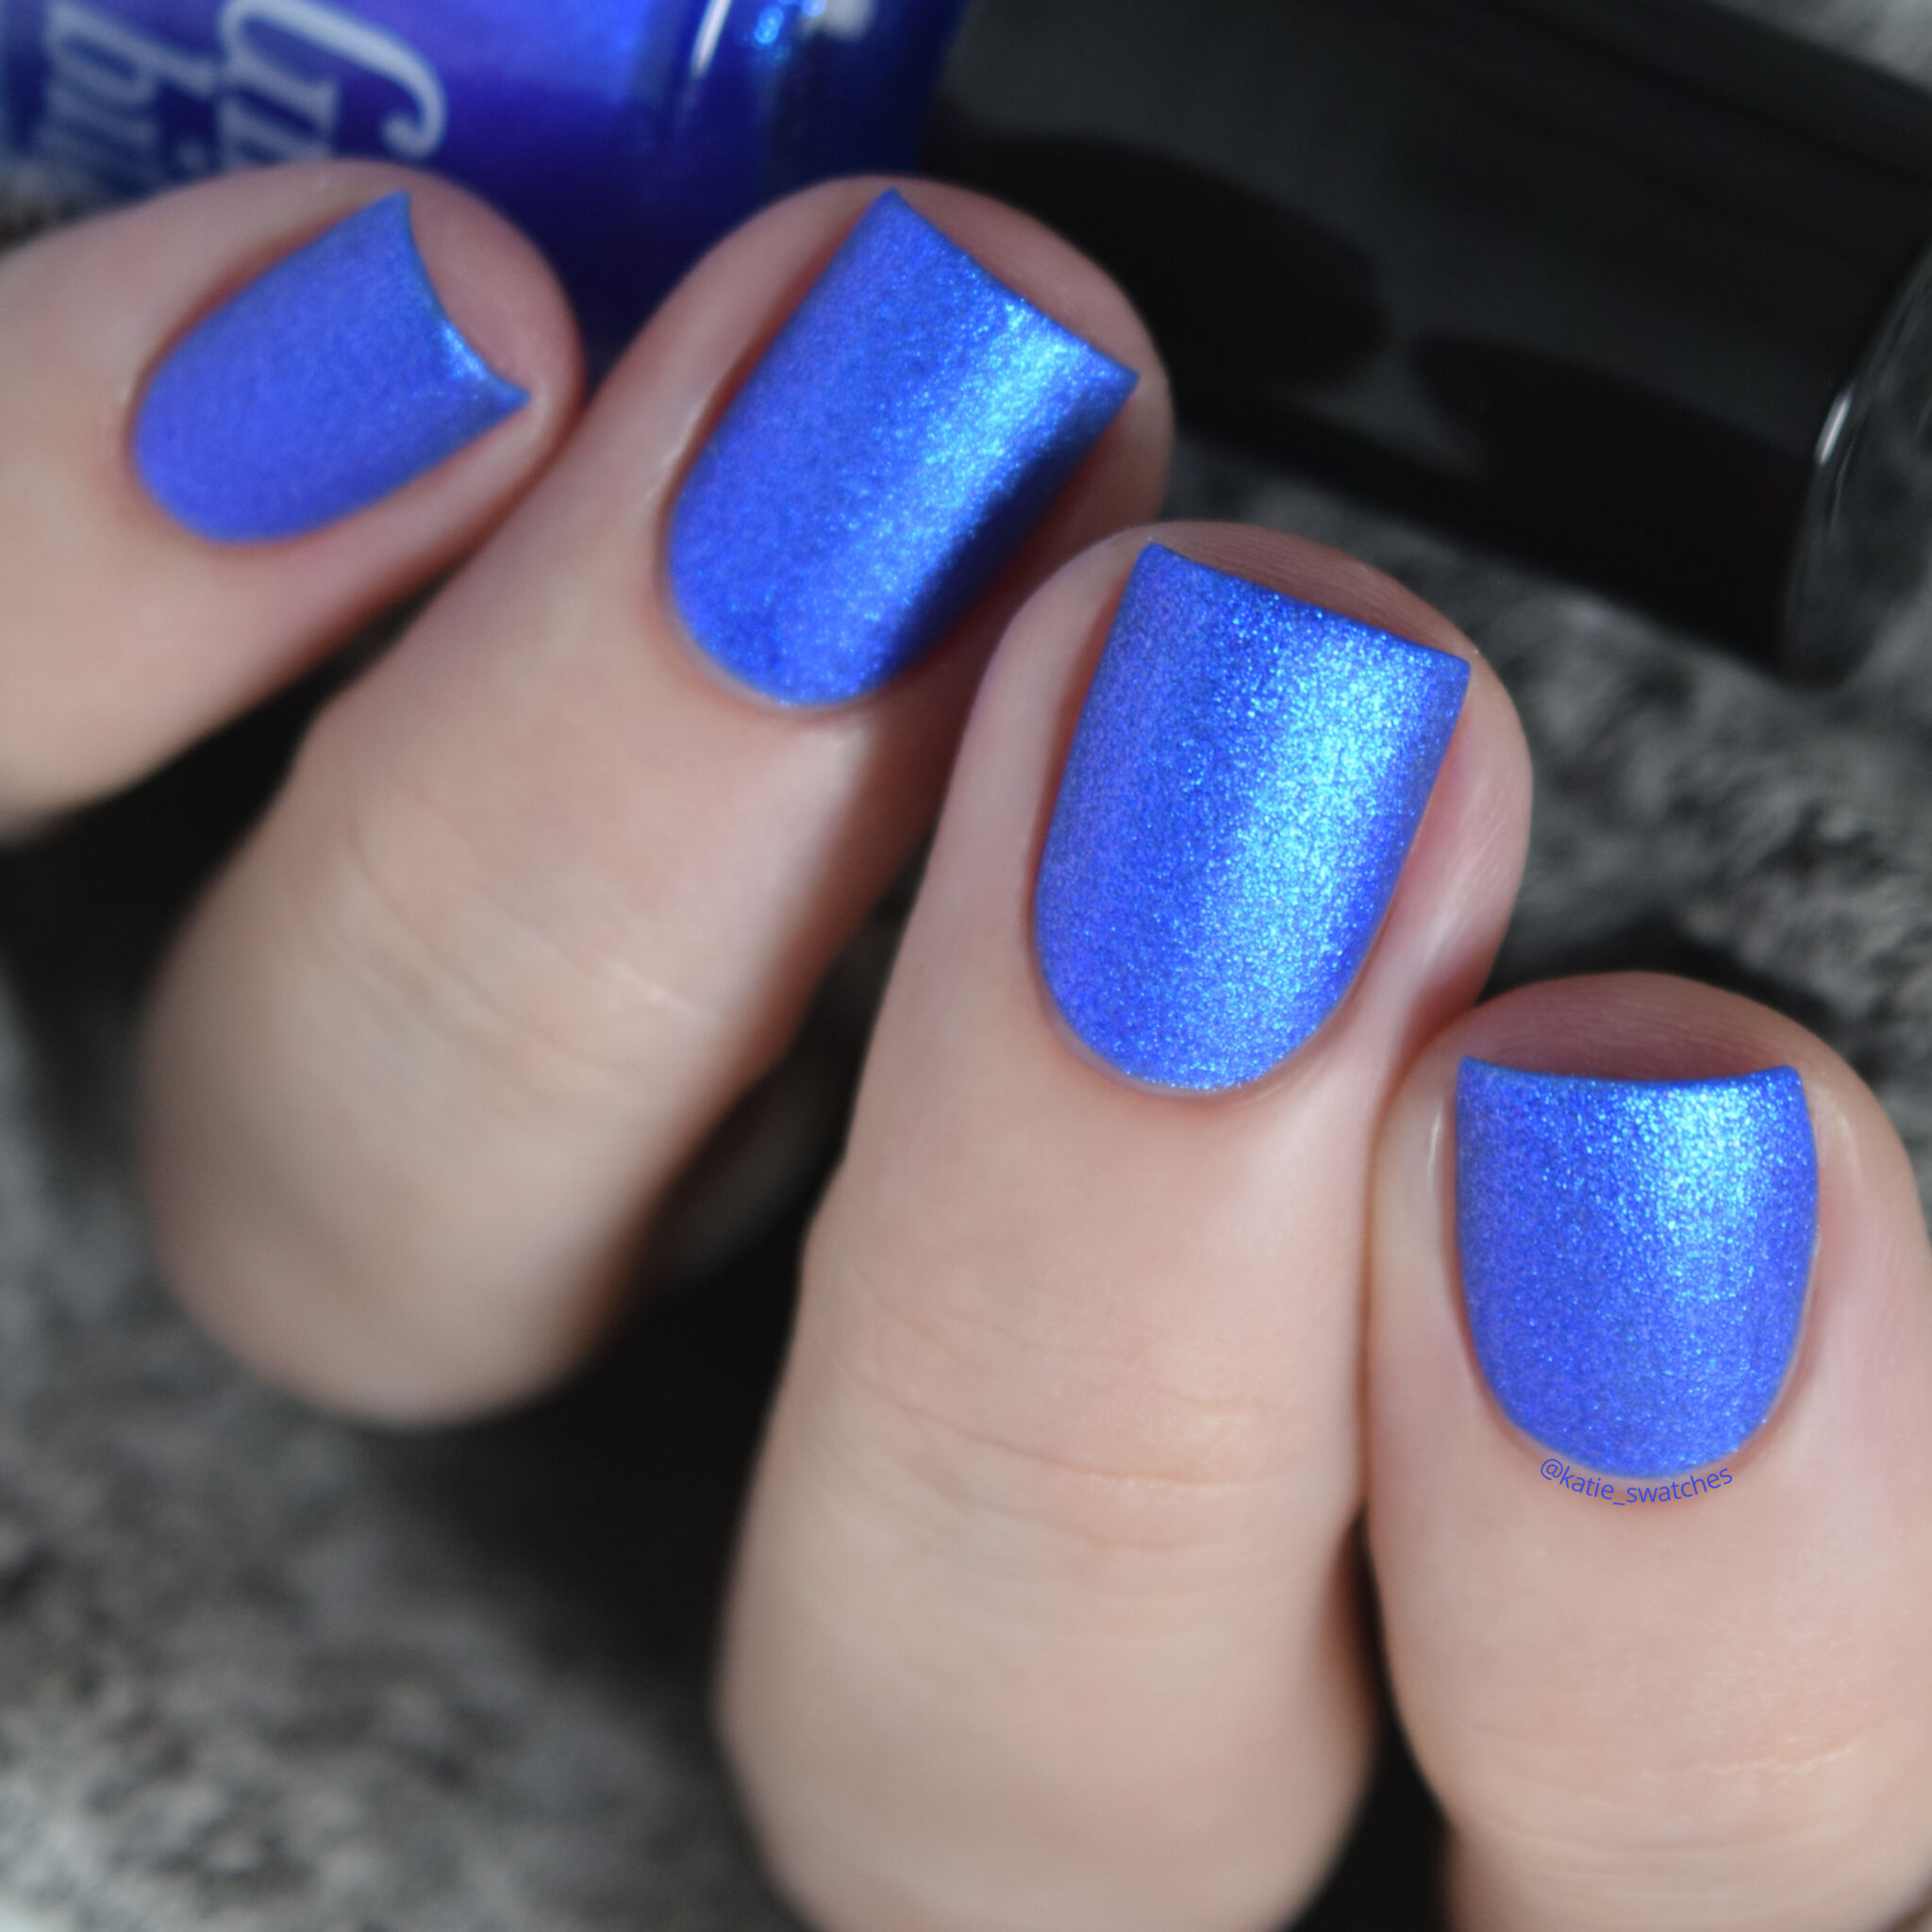 Girly Bits - Hot Dogs nail polish swatch. Ultramarine blue matte nail polish with a violet/blue shimmer.